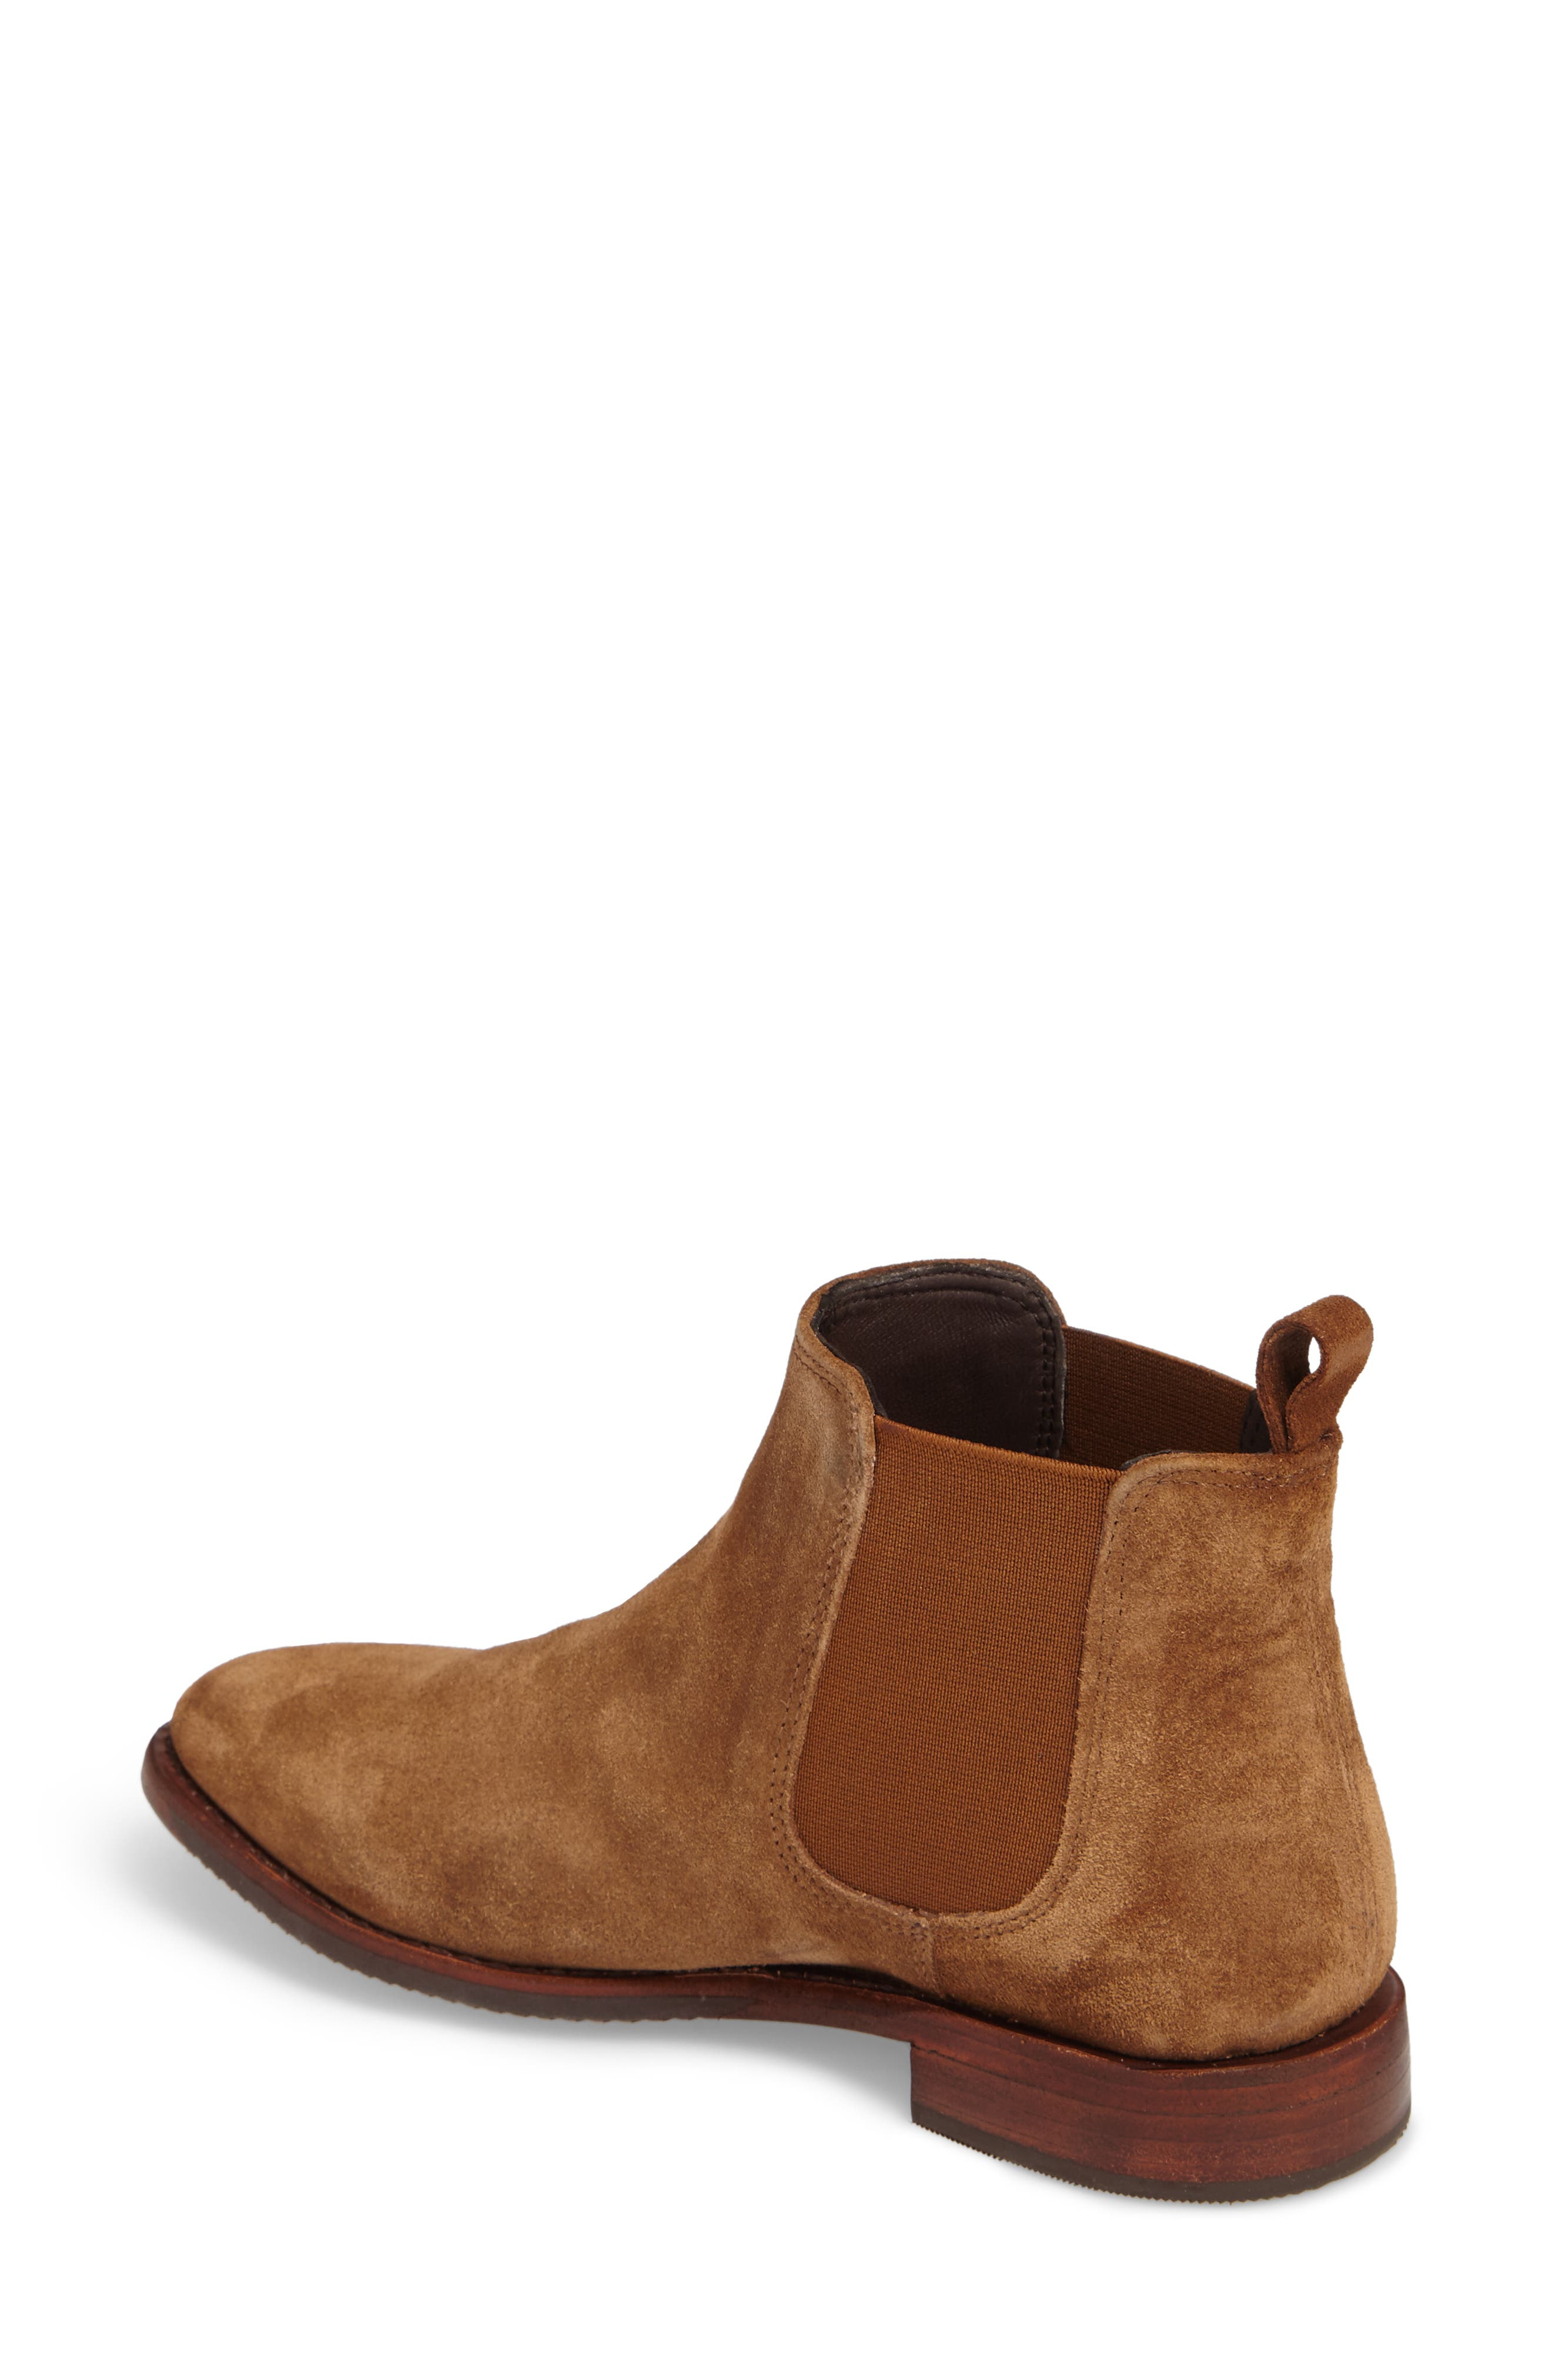 Gabrielle Chelsea Boot,                             Alternate thumbnail 2, color,                             Brown Suede